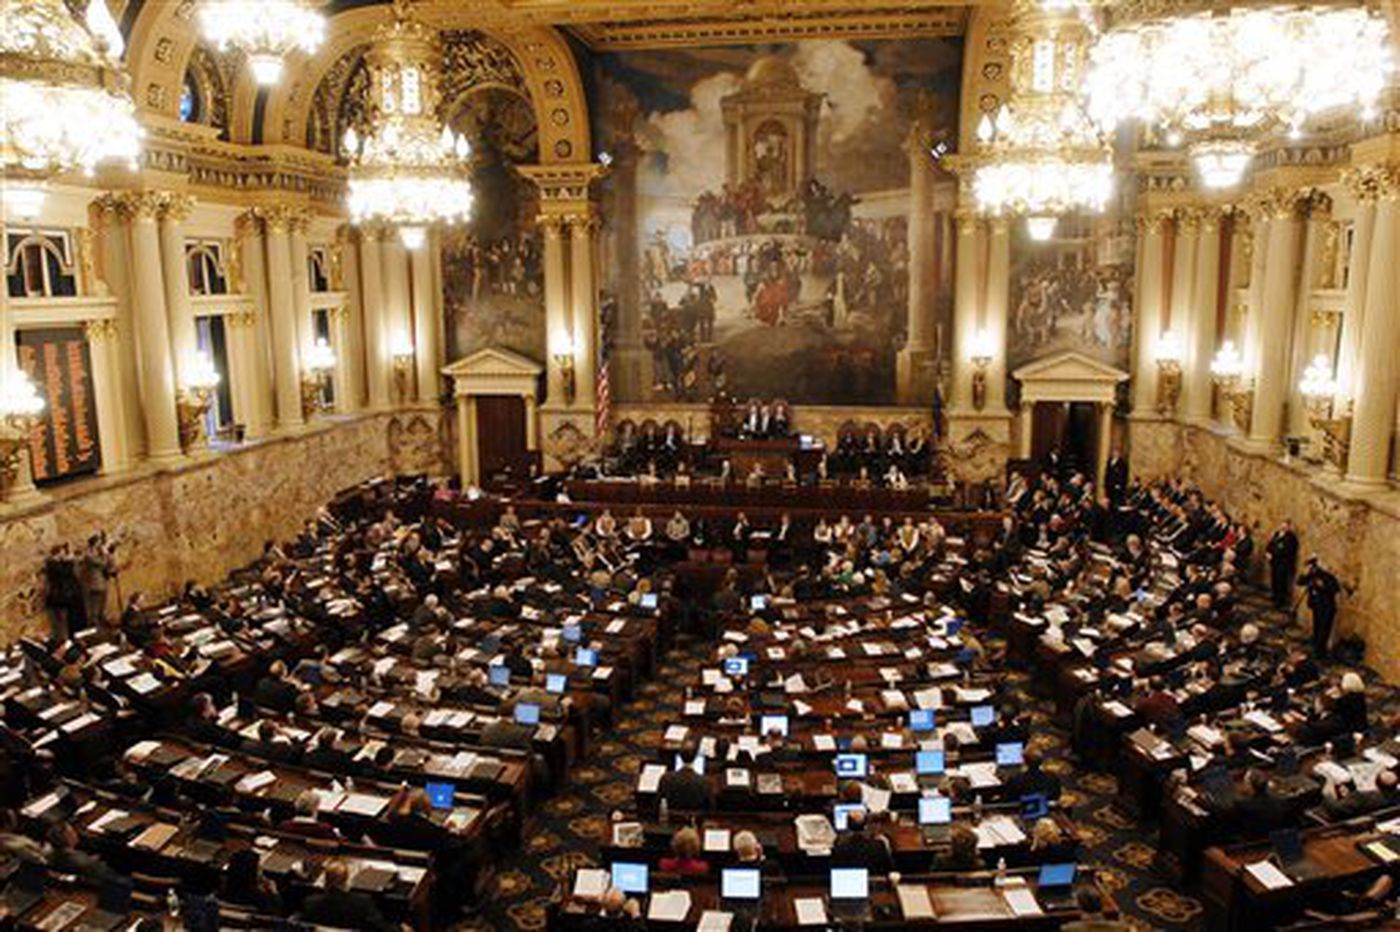 Coming to terms with term limits in Pennsylvania's legislature | John Baer